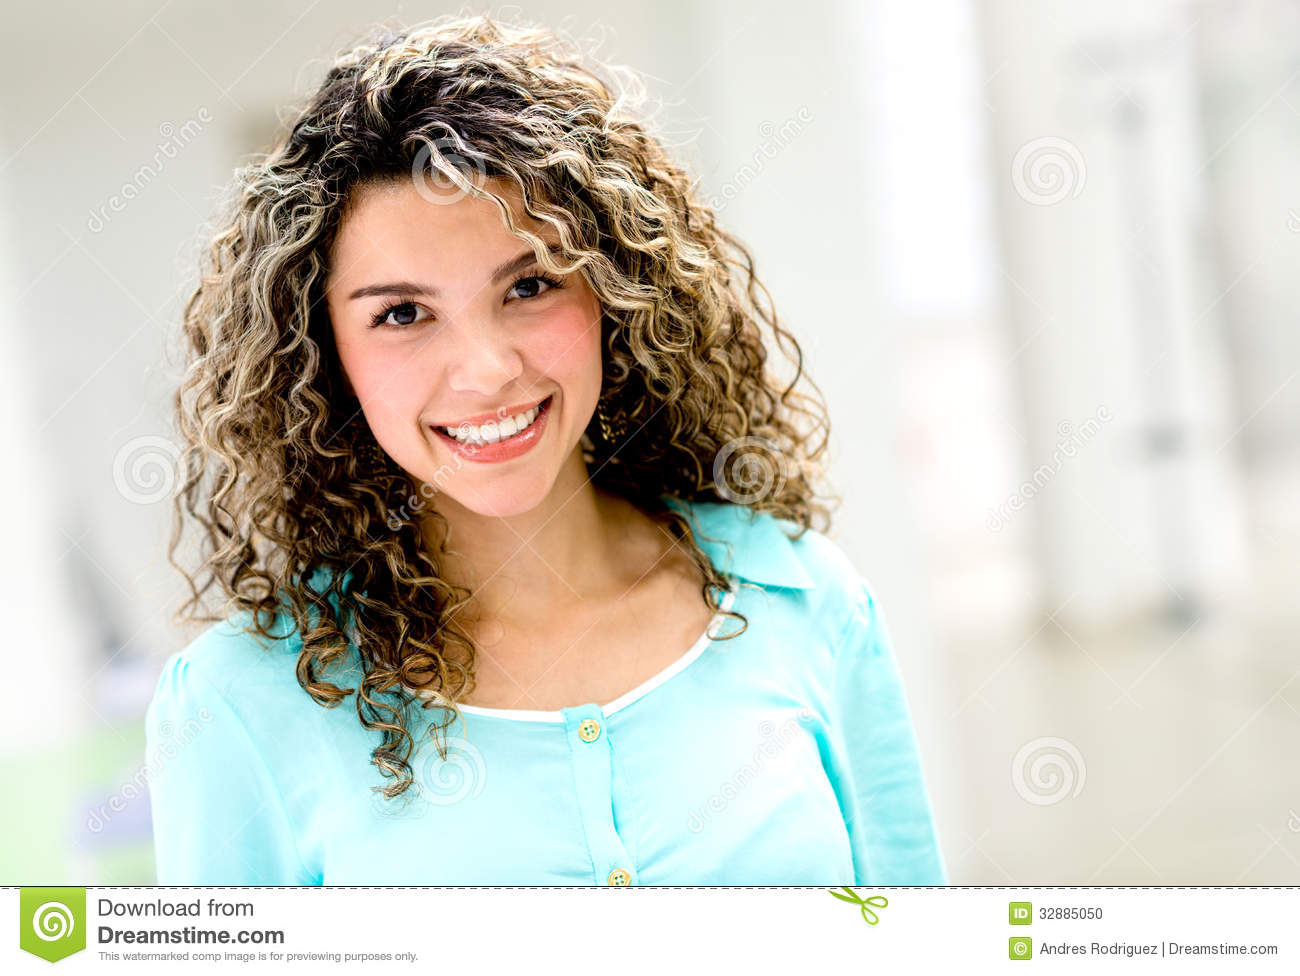 happy-woman-smiling-portrait-beautiful-indoors-32885050.jpg